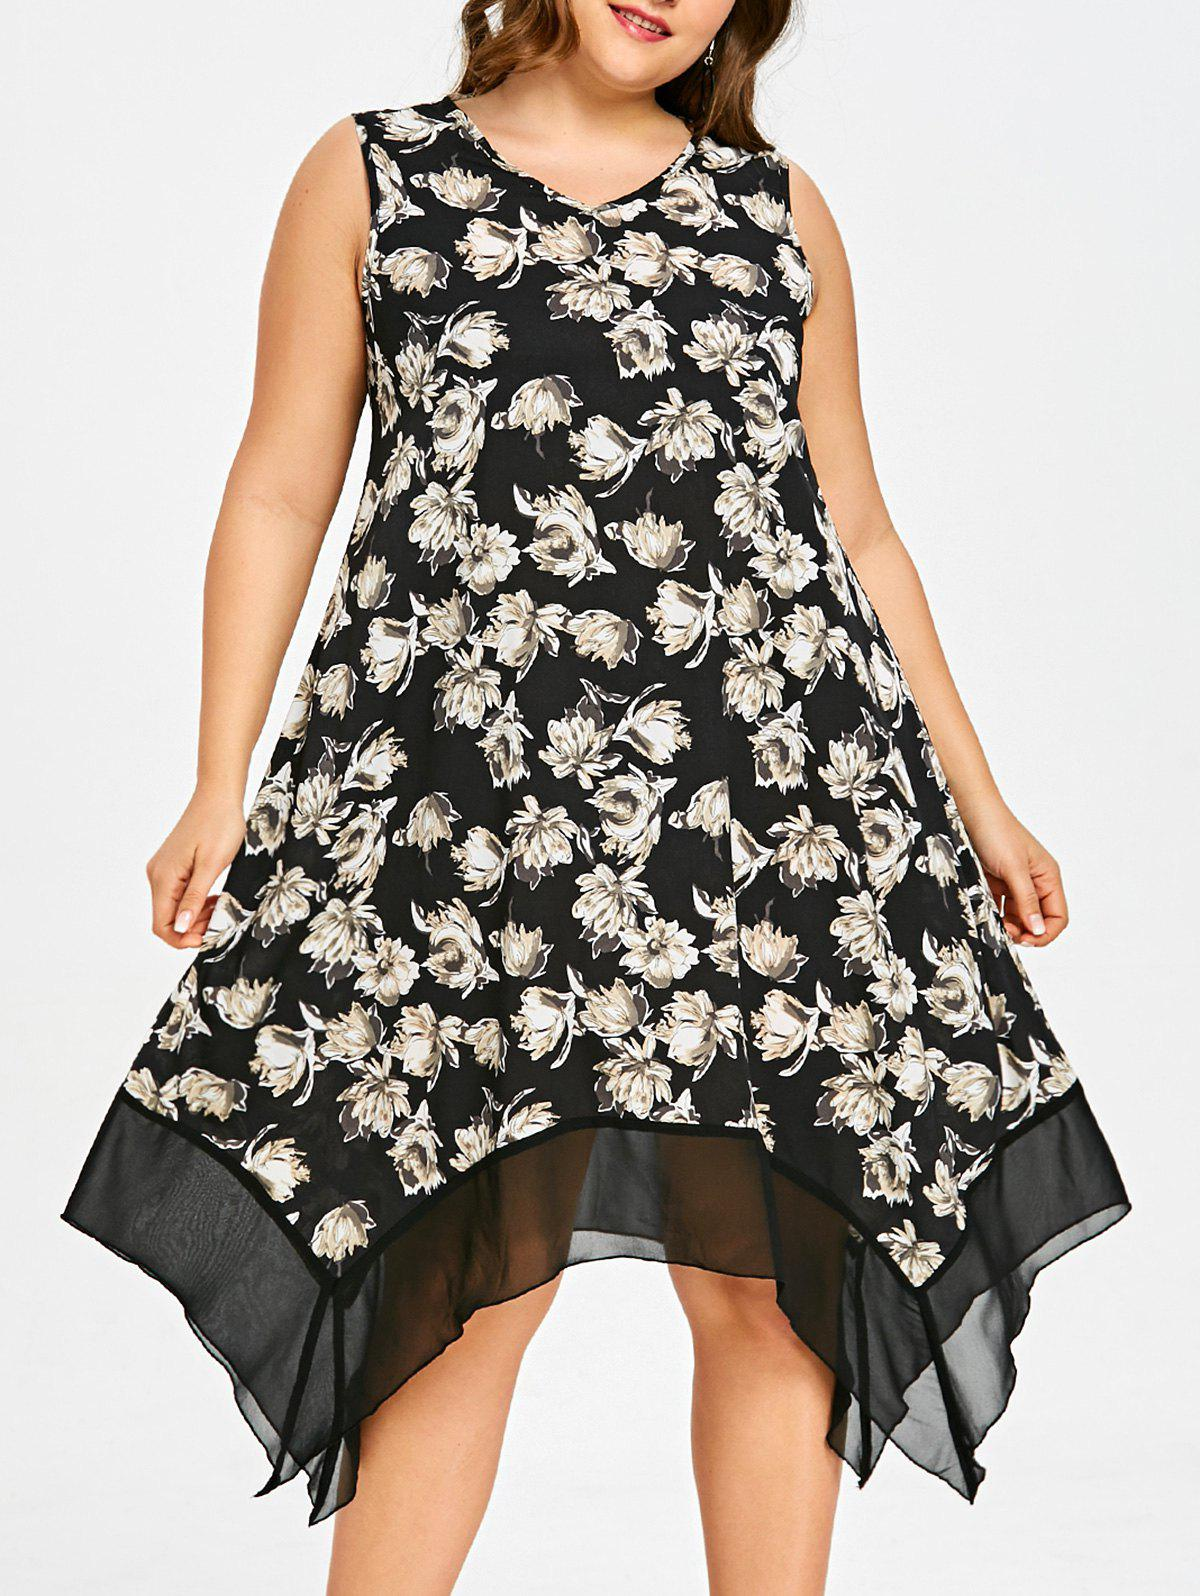 Chic Floral Plus Size Asymmetric Swing Dress